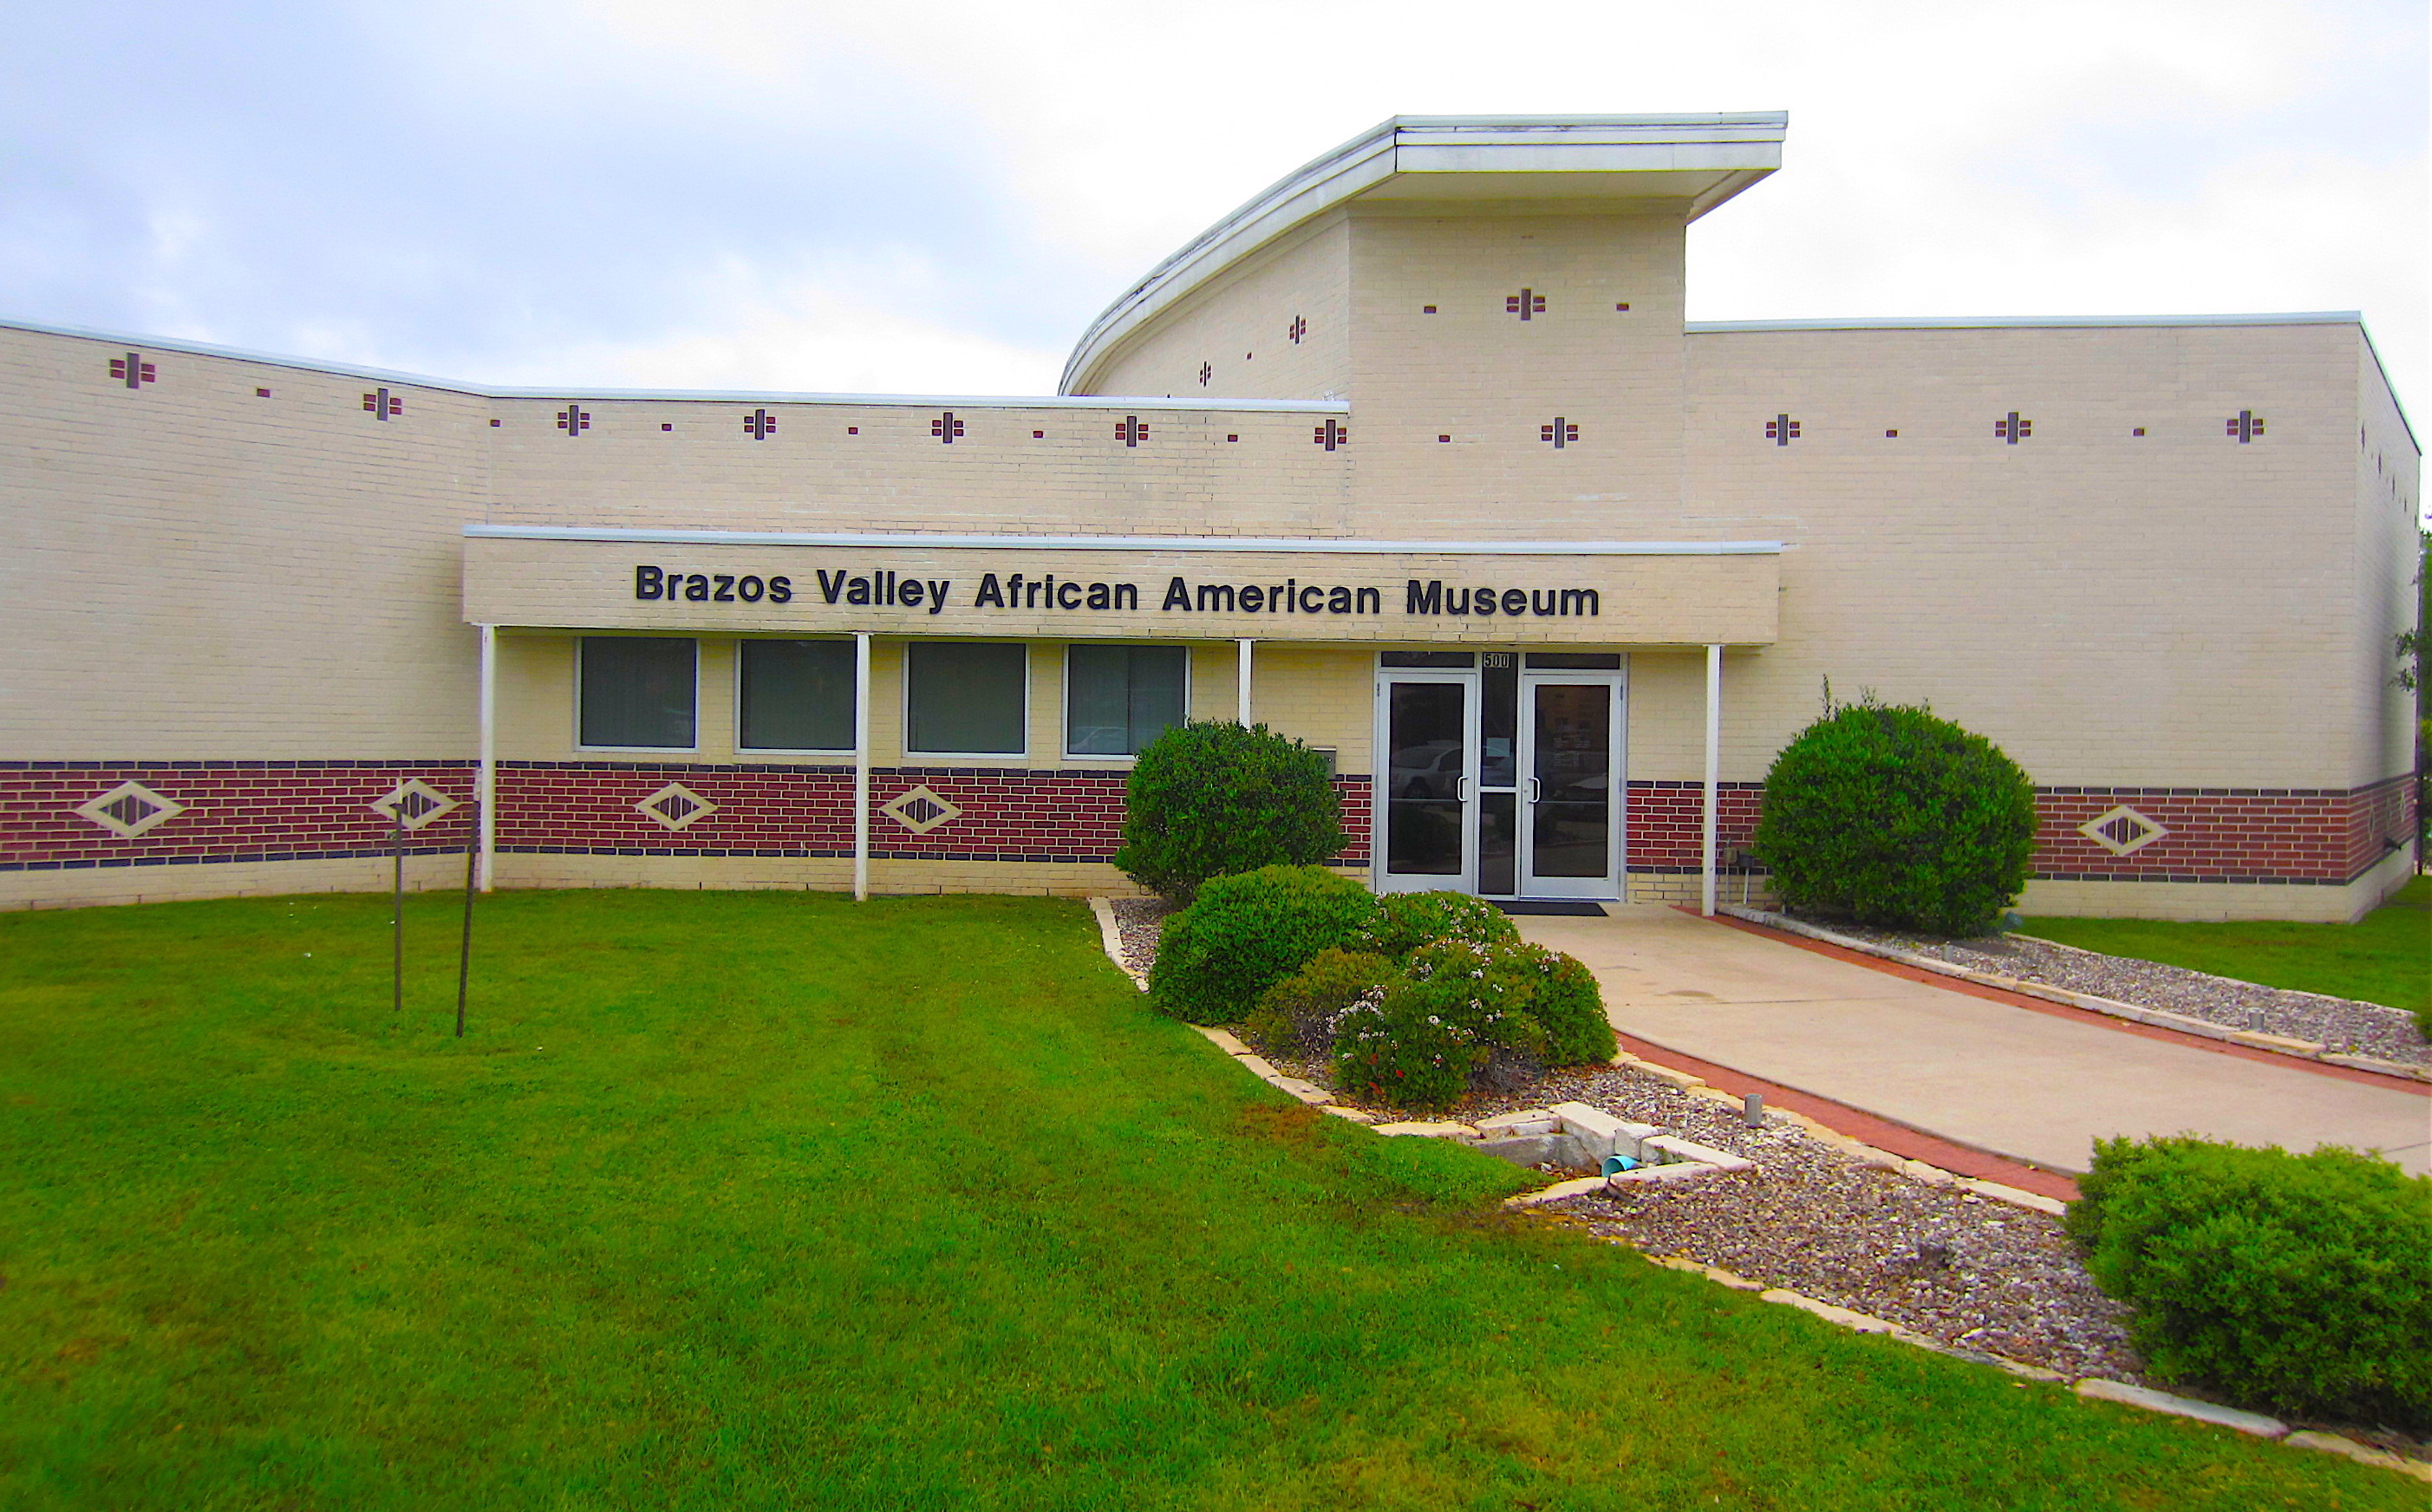 brazos valley African American museum exterior